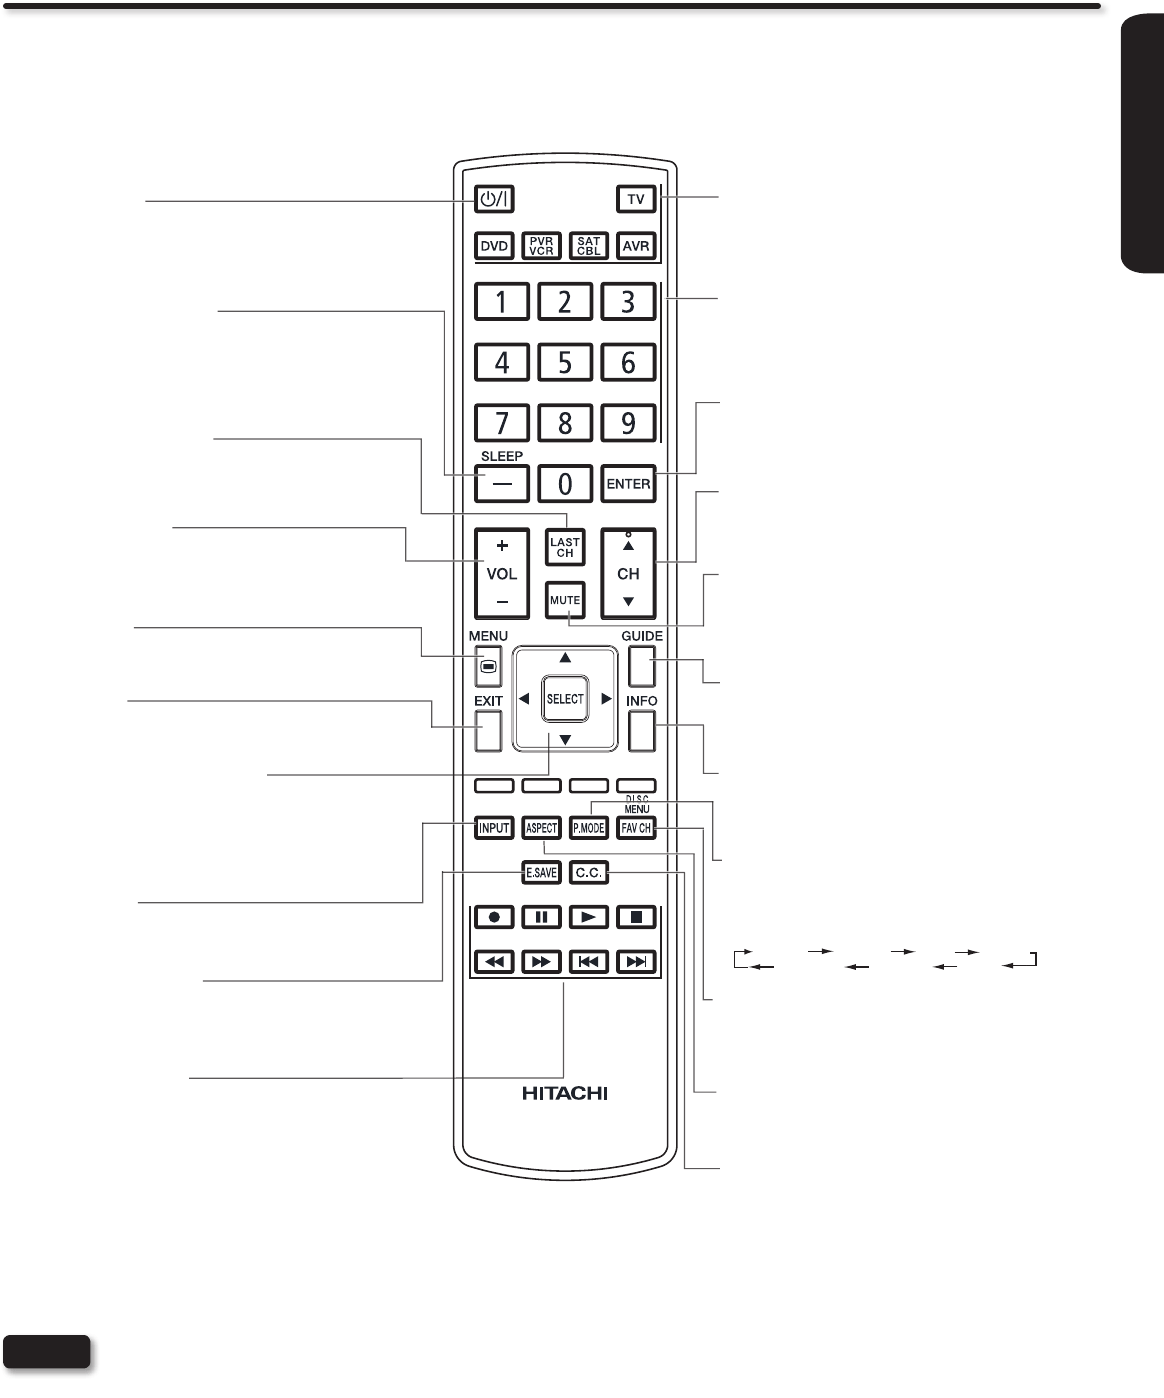 Page 11 of Hitachi Flat Panel Television LE42S704 User